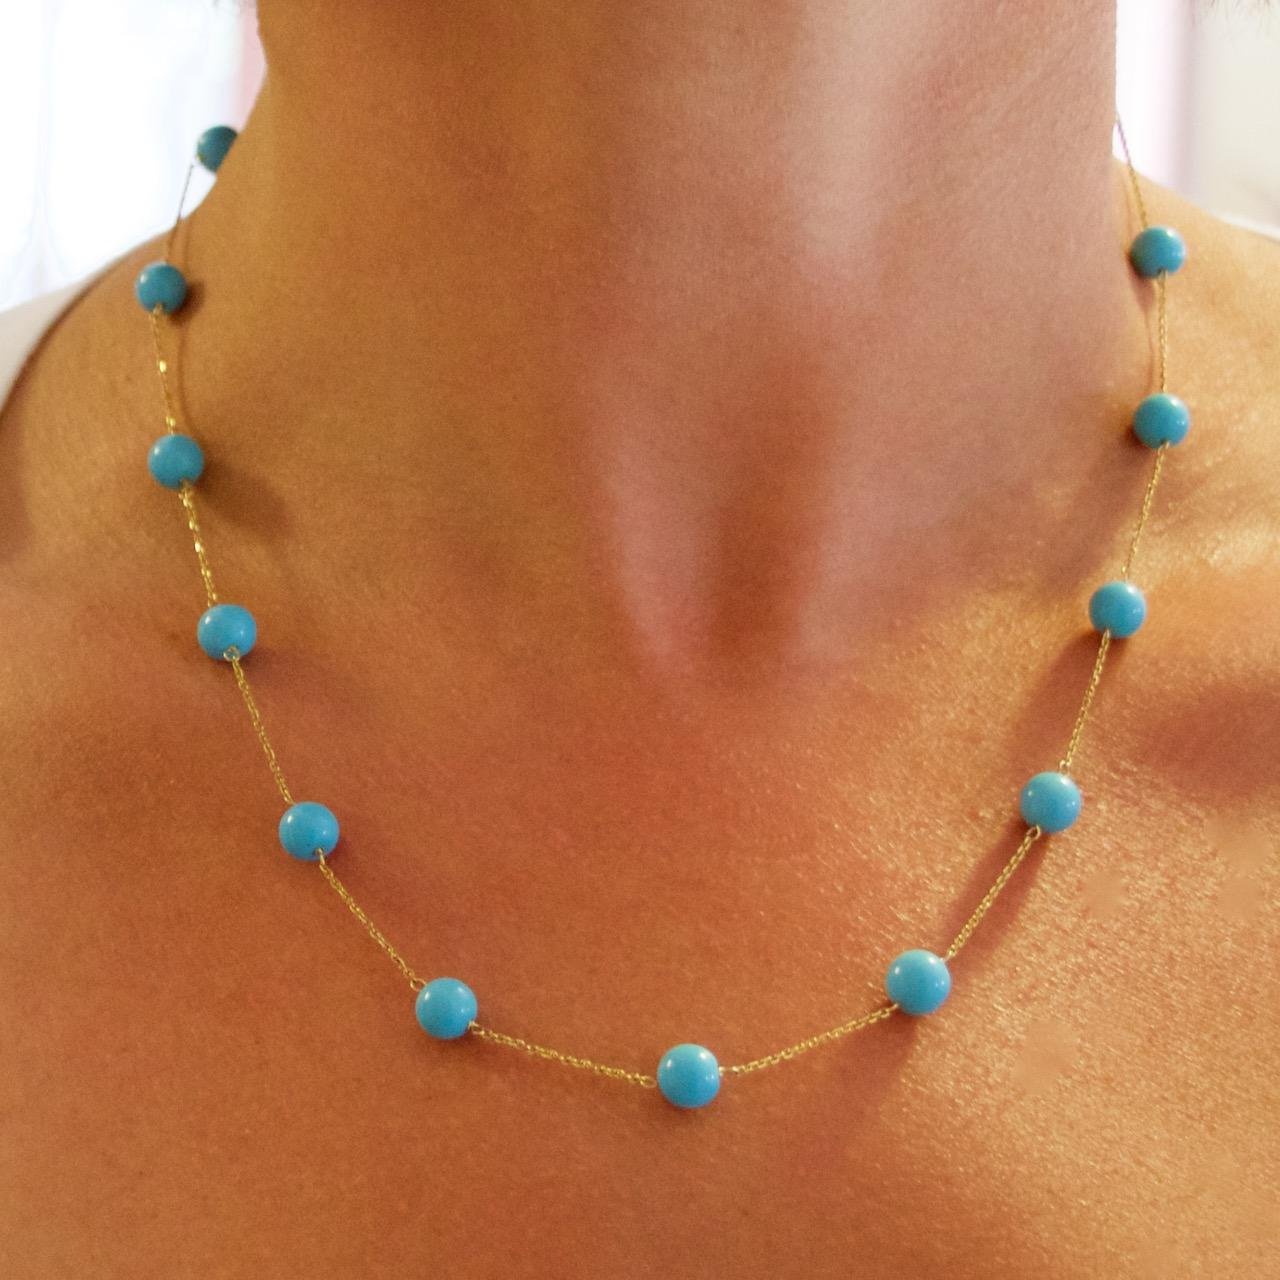 14k Gold Sleeping Beauty Turquoise Station Necklace From